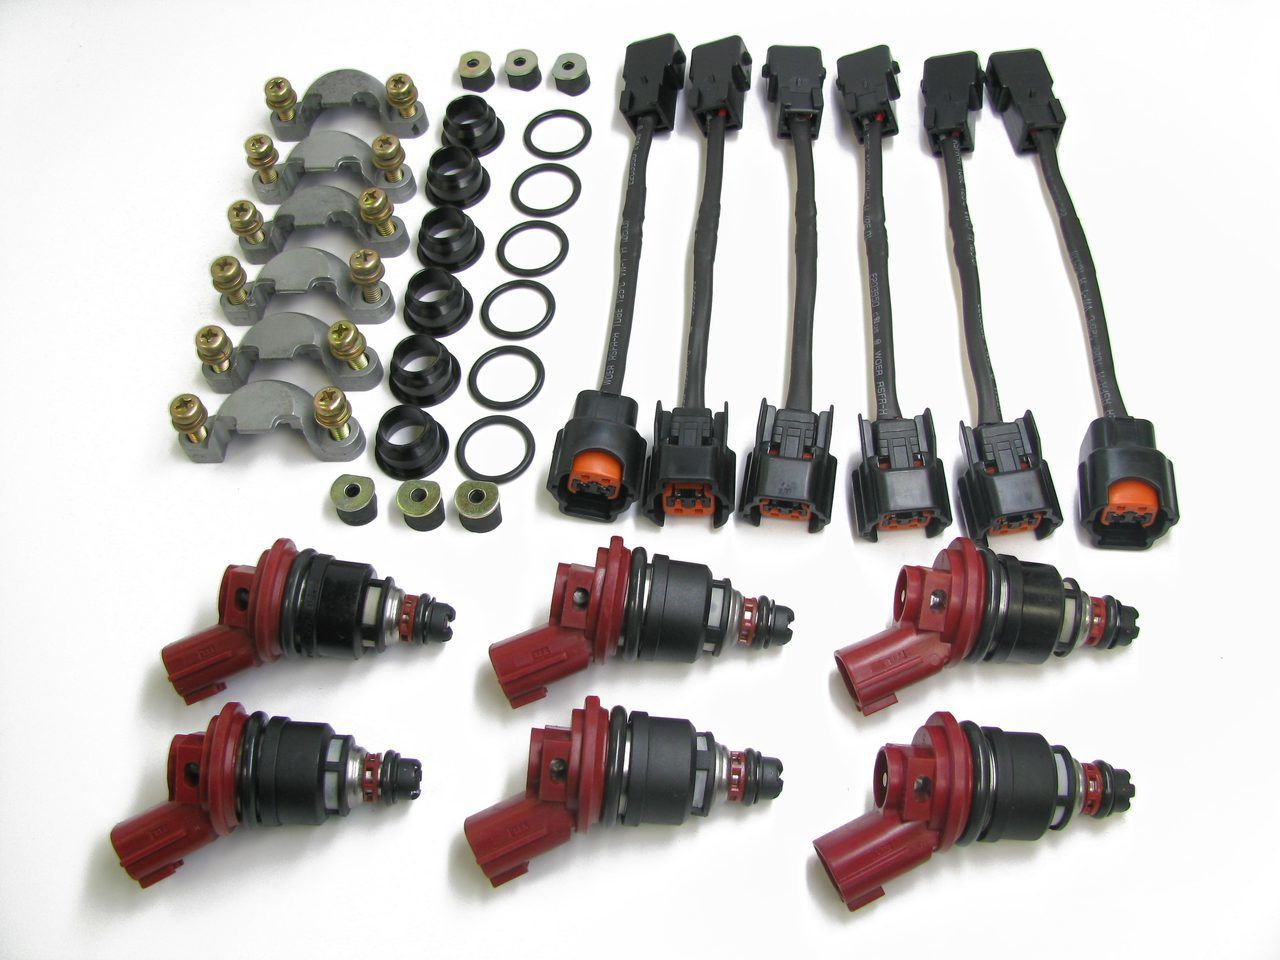 AUS Injectors Early to Late Upgrade 370cc / 380cc Set w/ Optional Adapter Kit for 90-94TT - Nissan 300ZX Z32